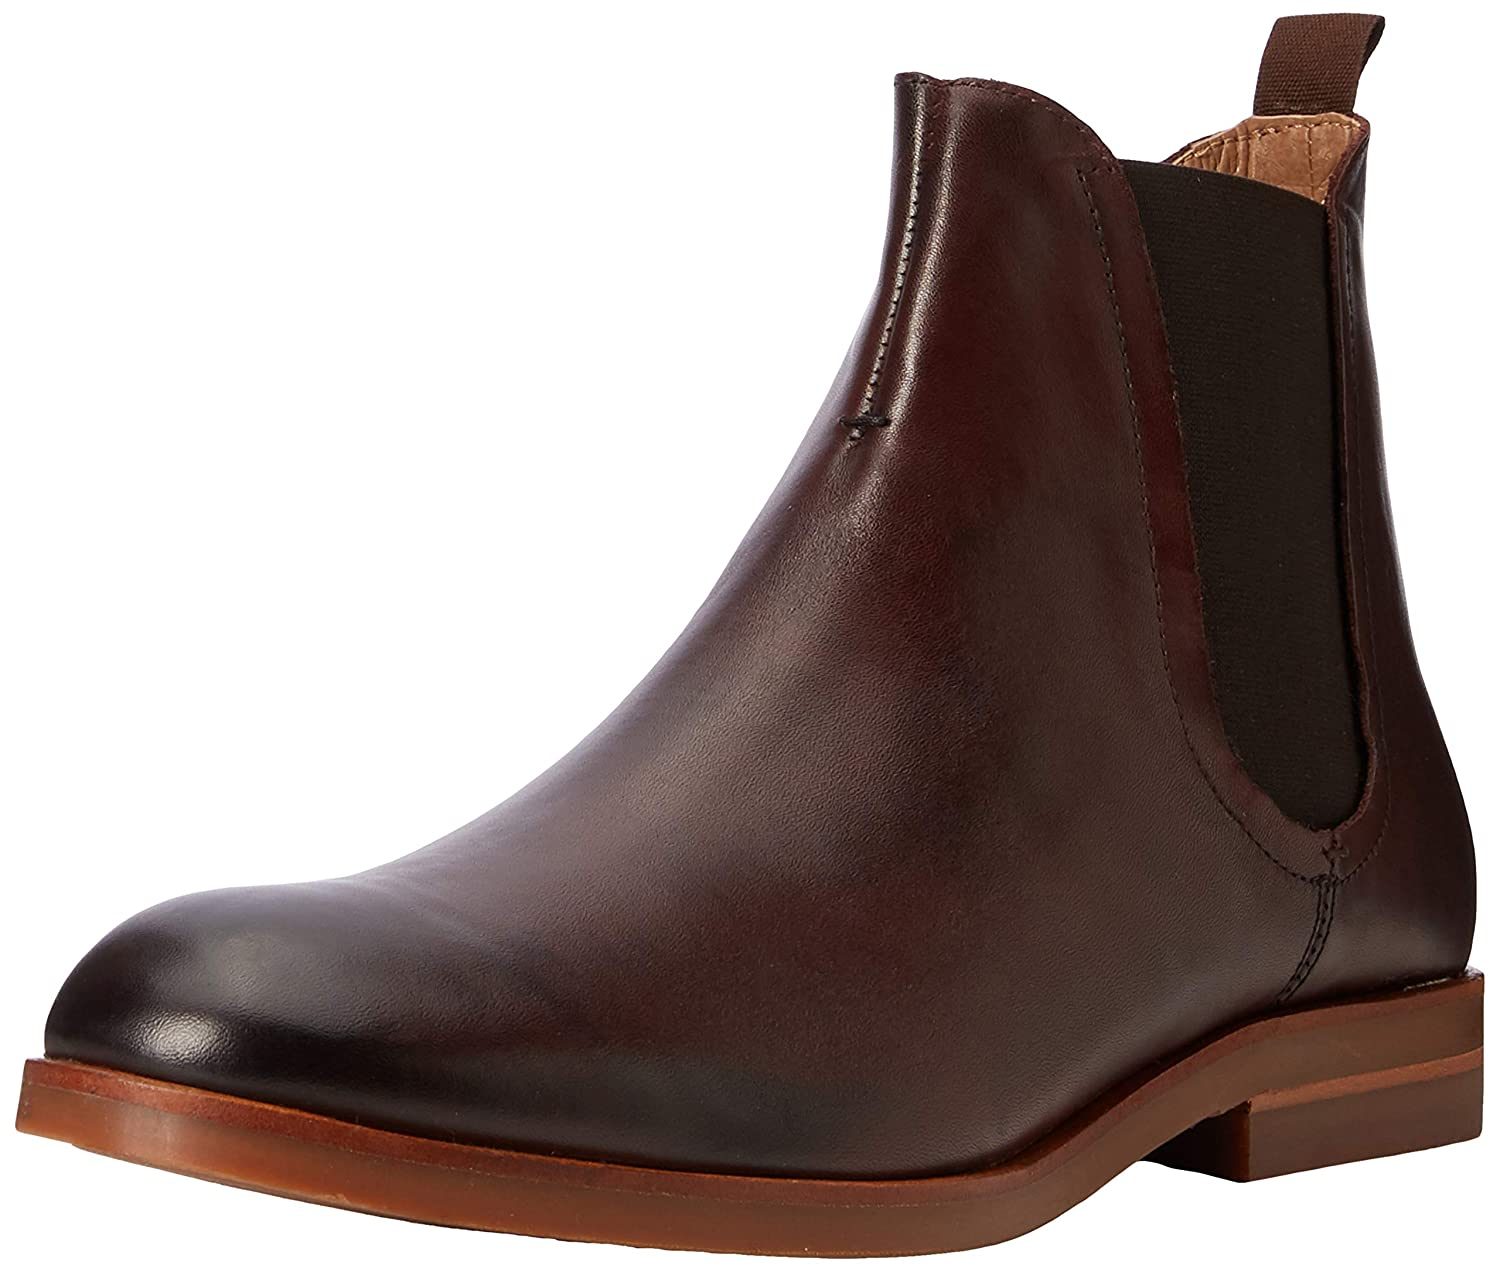 TALLA 41 EU. H by Hudson Adlington Leather, Botas Chelsea para Hombre